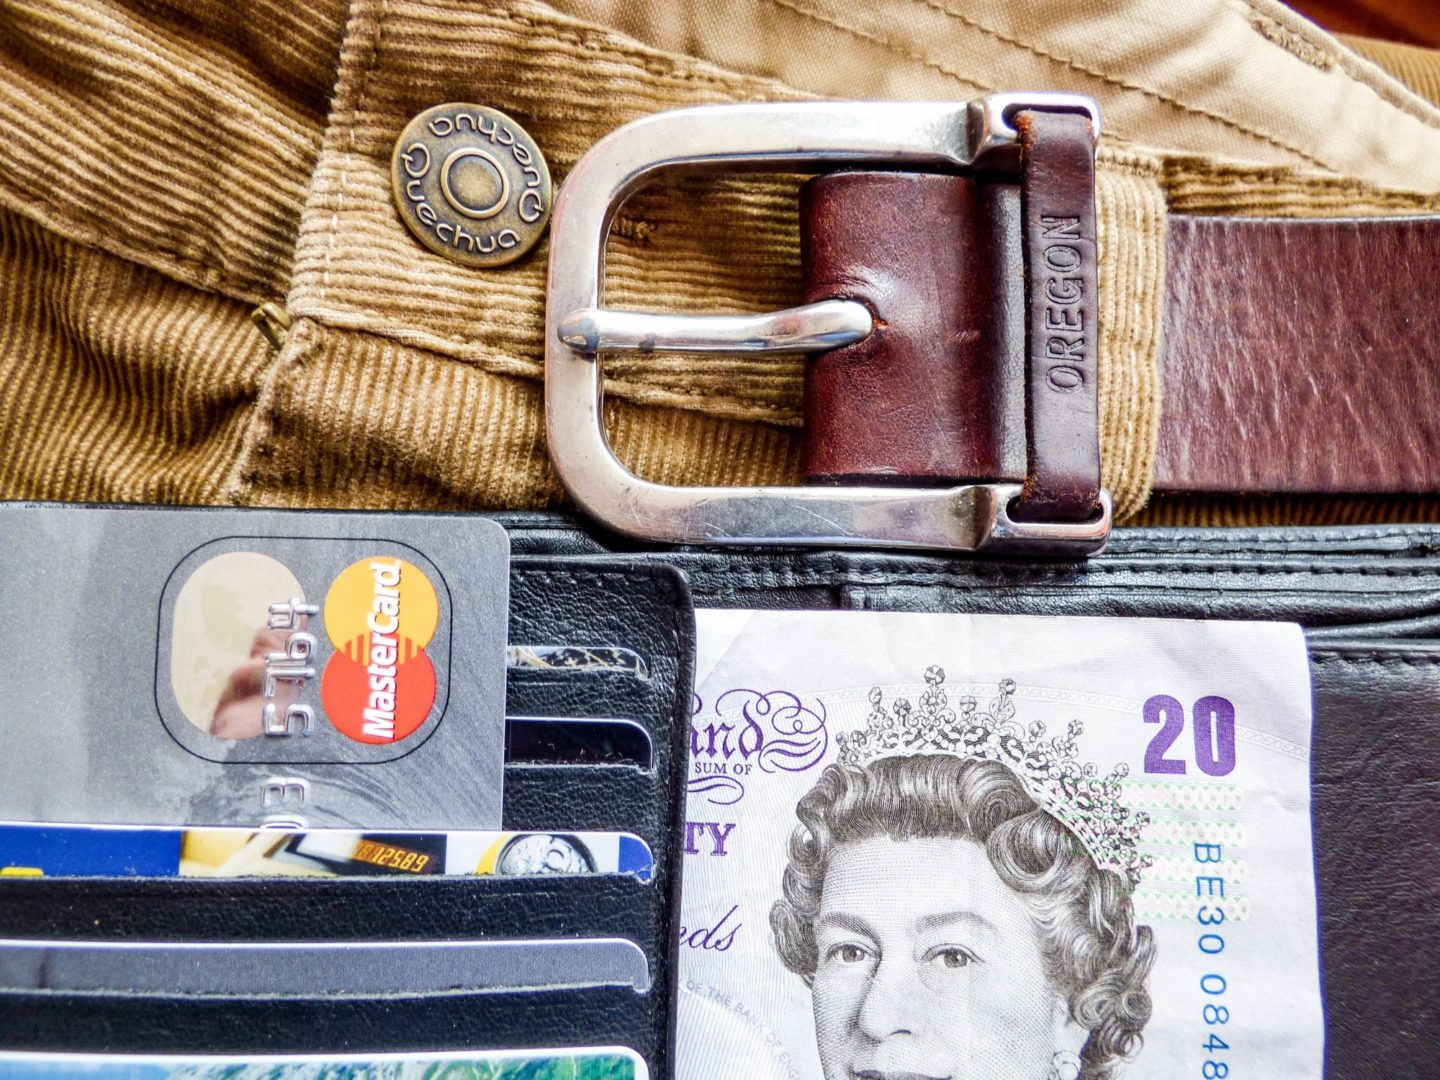 Belt and wallet with credit cards and cash